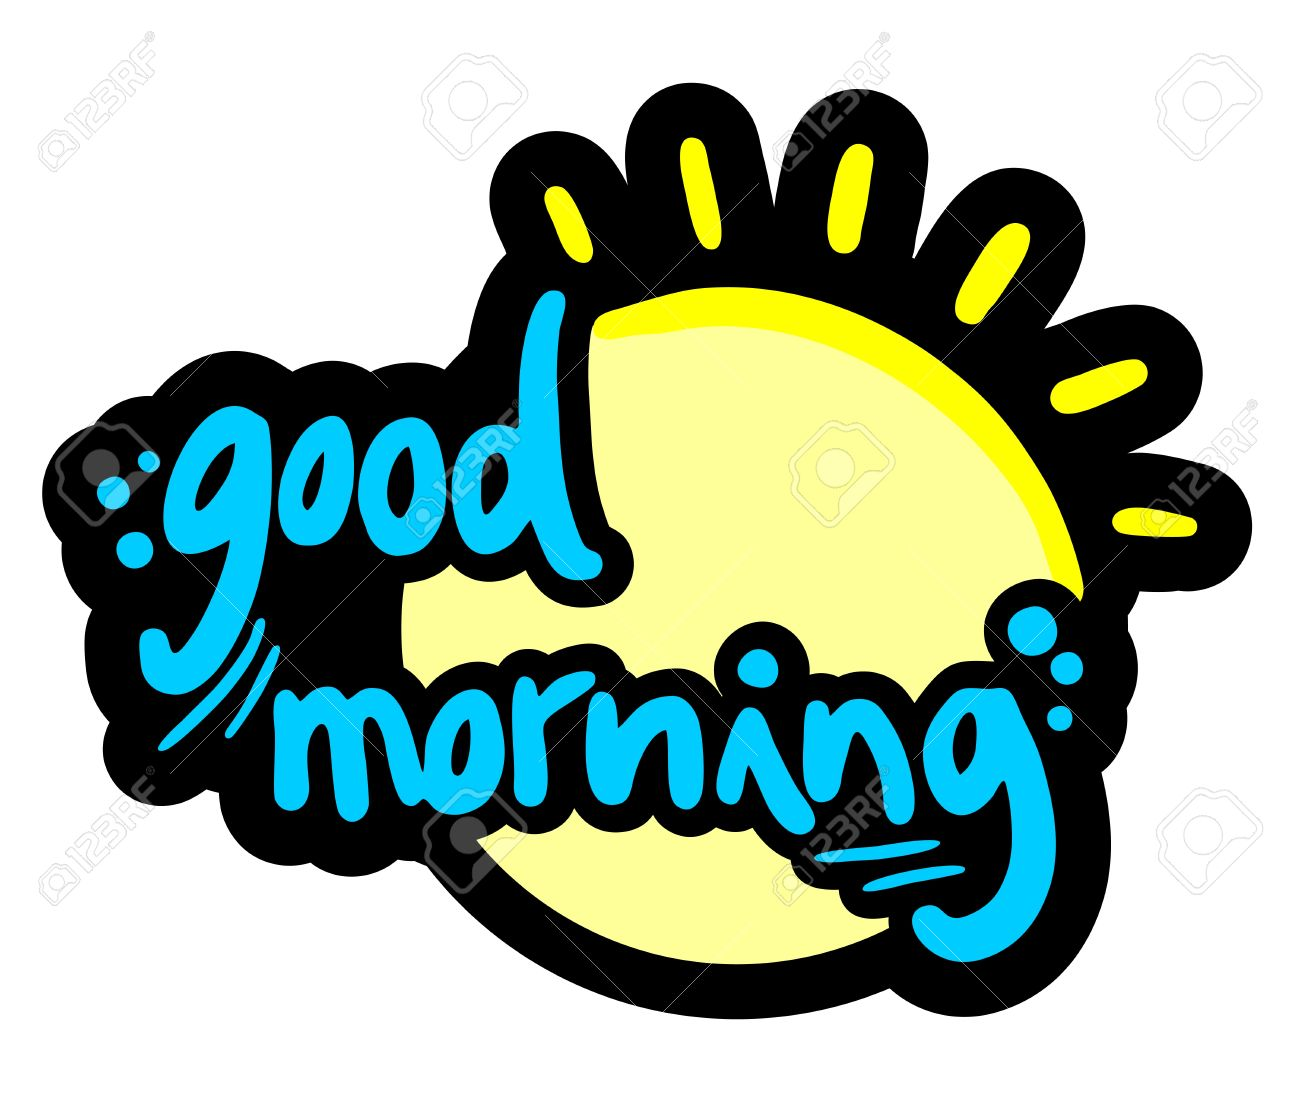 good morning sun design royalty free cliparts vectors and stock rh 123rf com good morning logo images good morning logo png